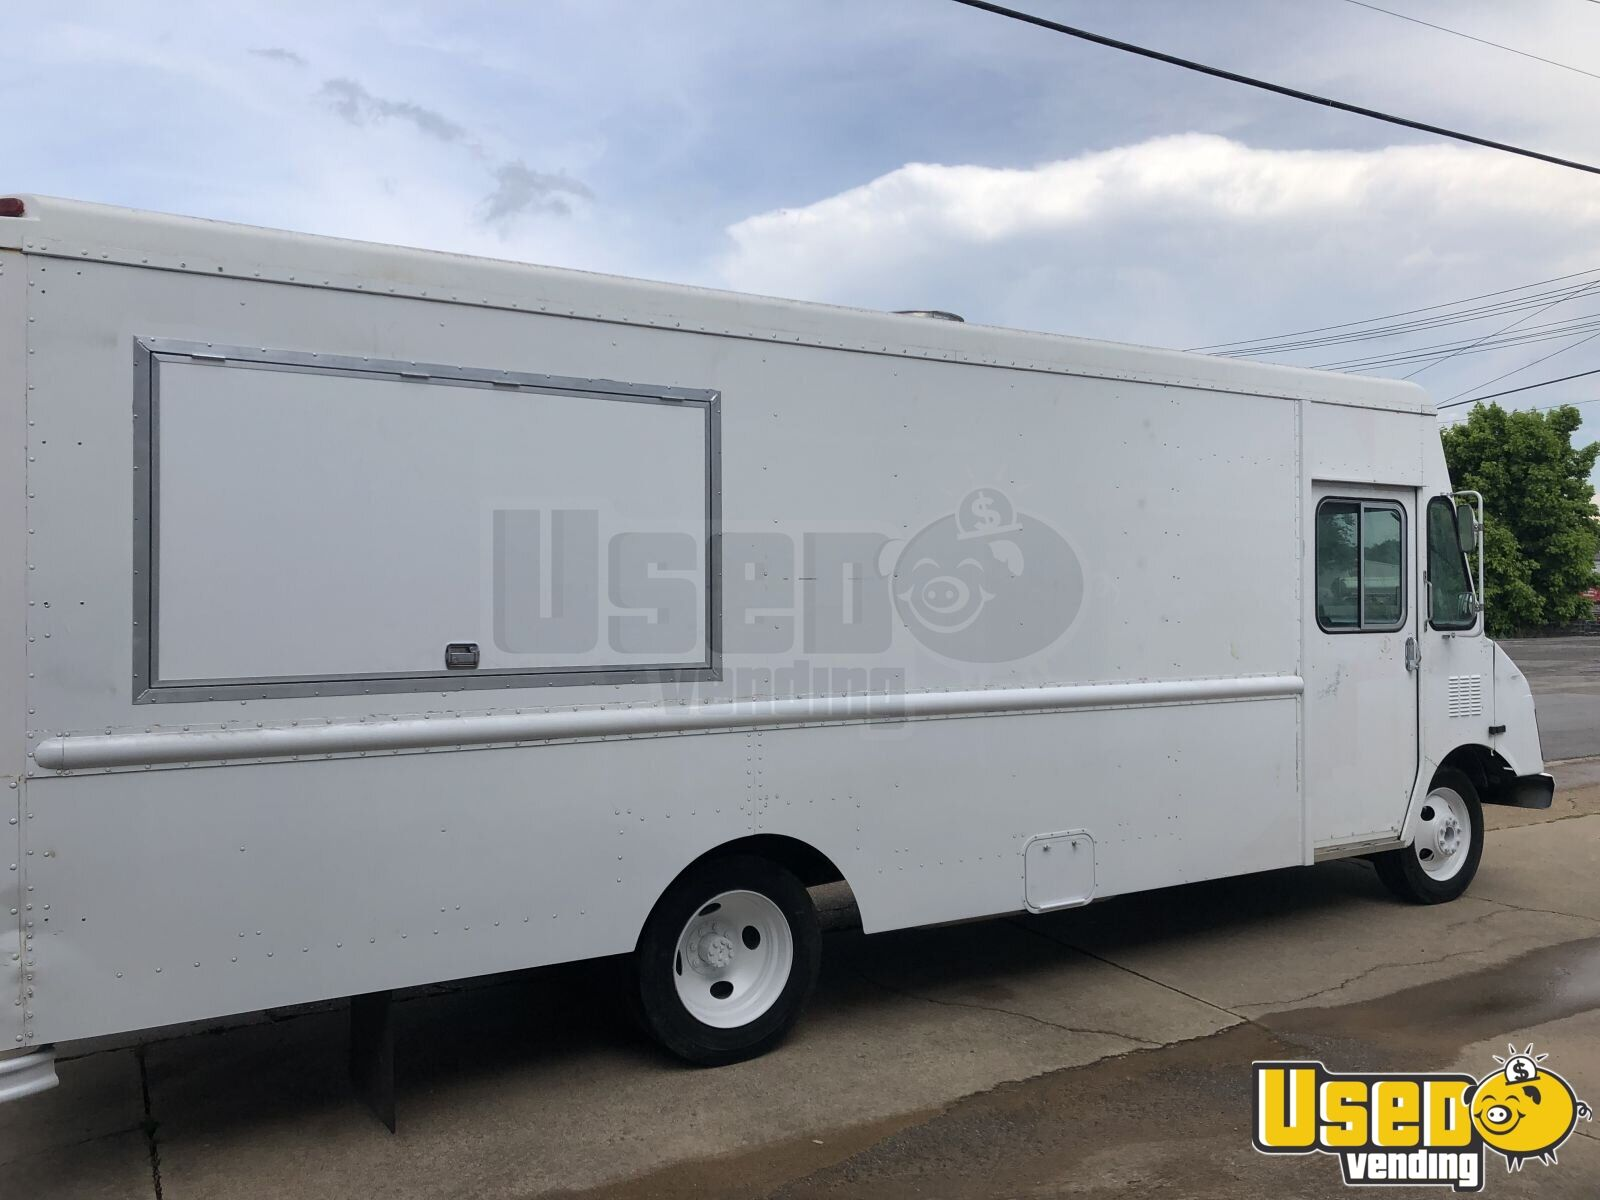 1999 Workhorse P32 All-purpose Food Truck Concession Window Missouri Diesel Engine for Sale - 2